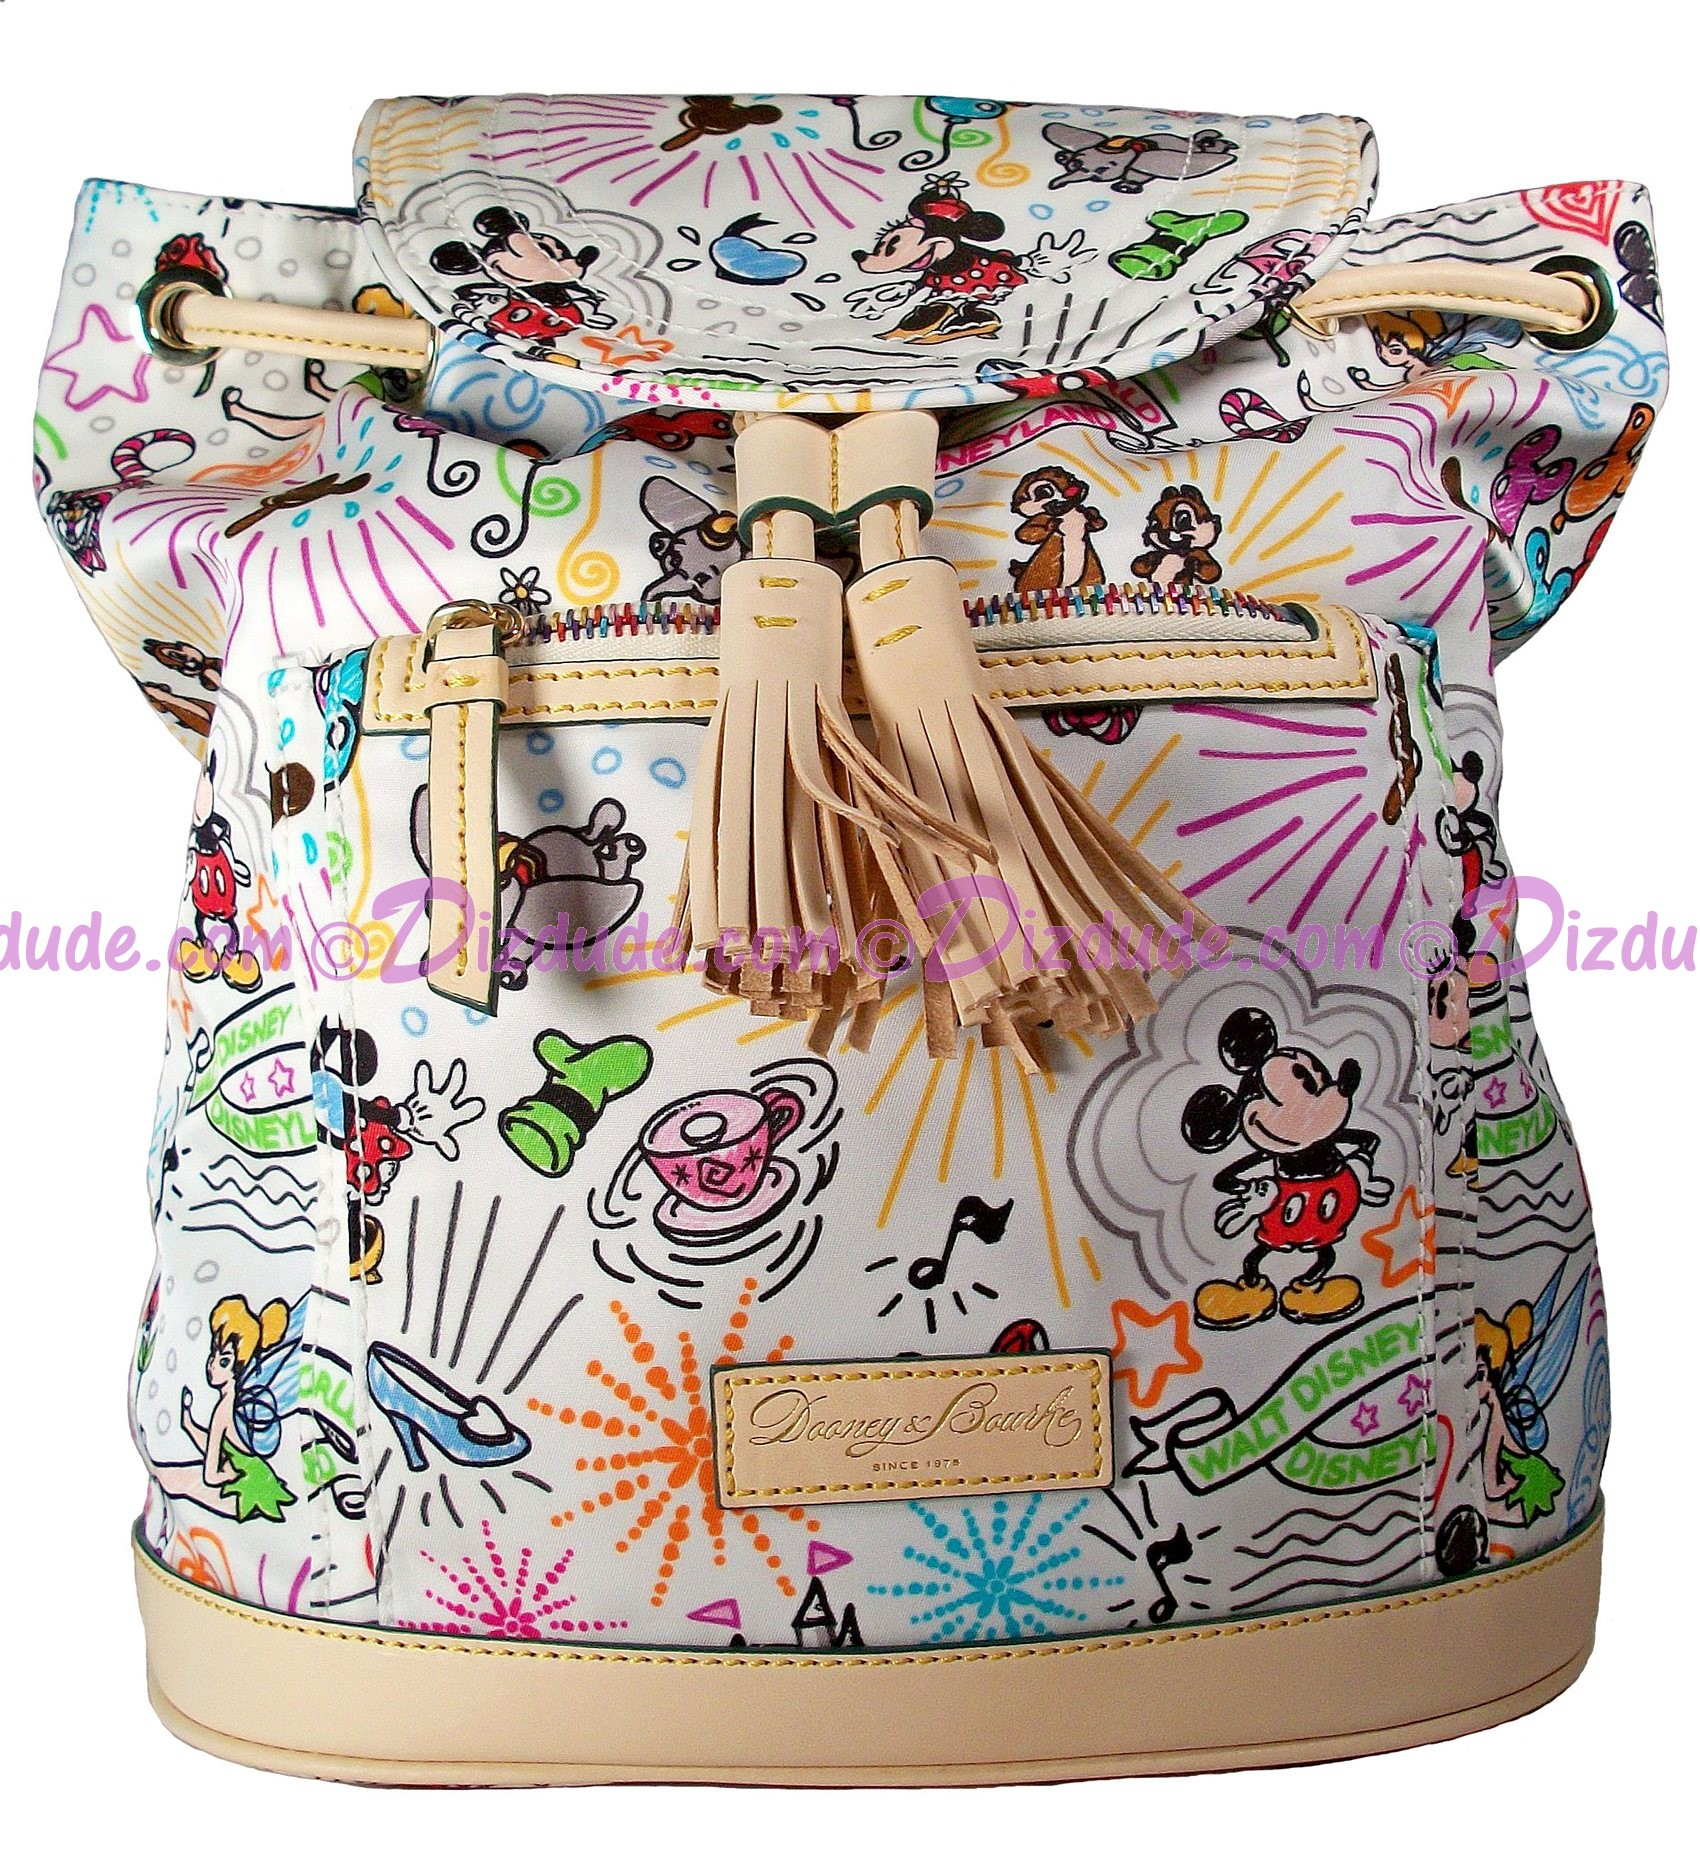 Dooney & Bourke Disney World Exclusive Classic Sketch Backpack  Front © Dizdude.com